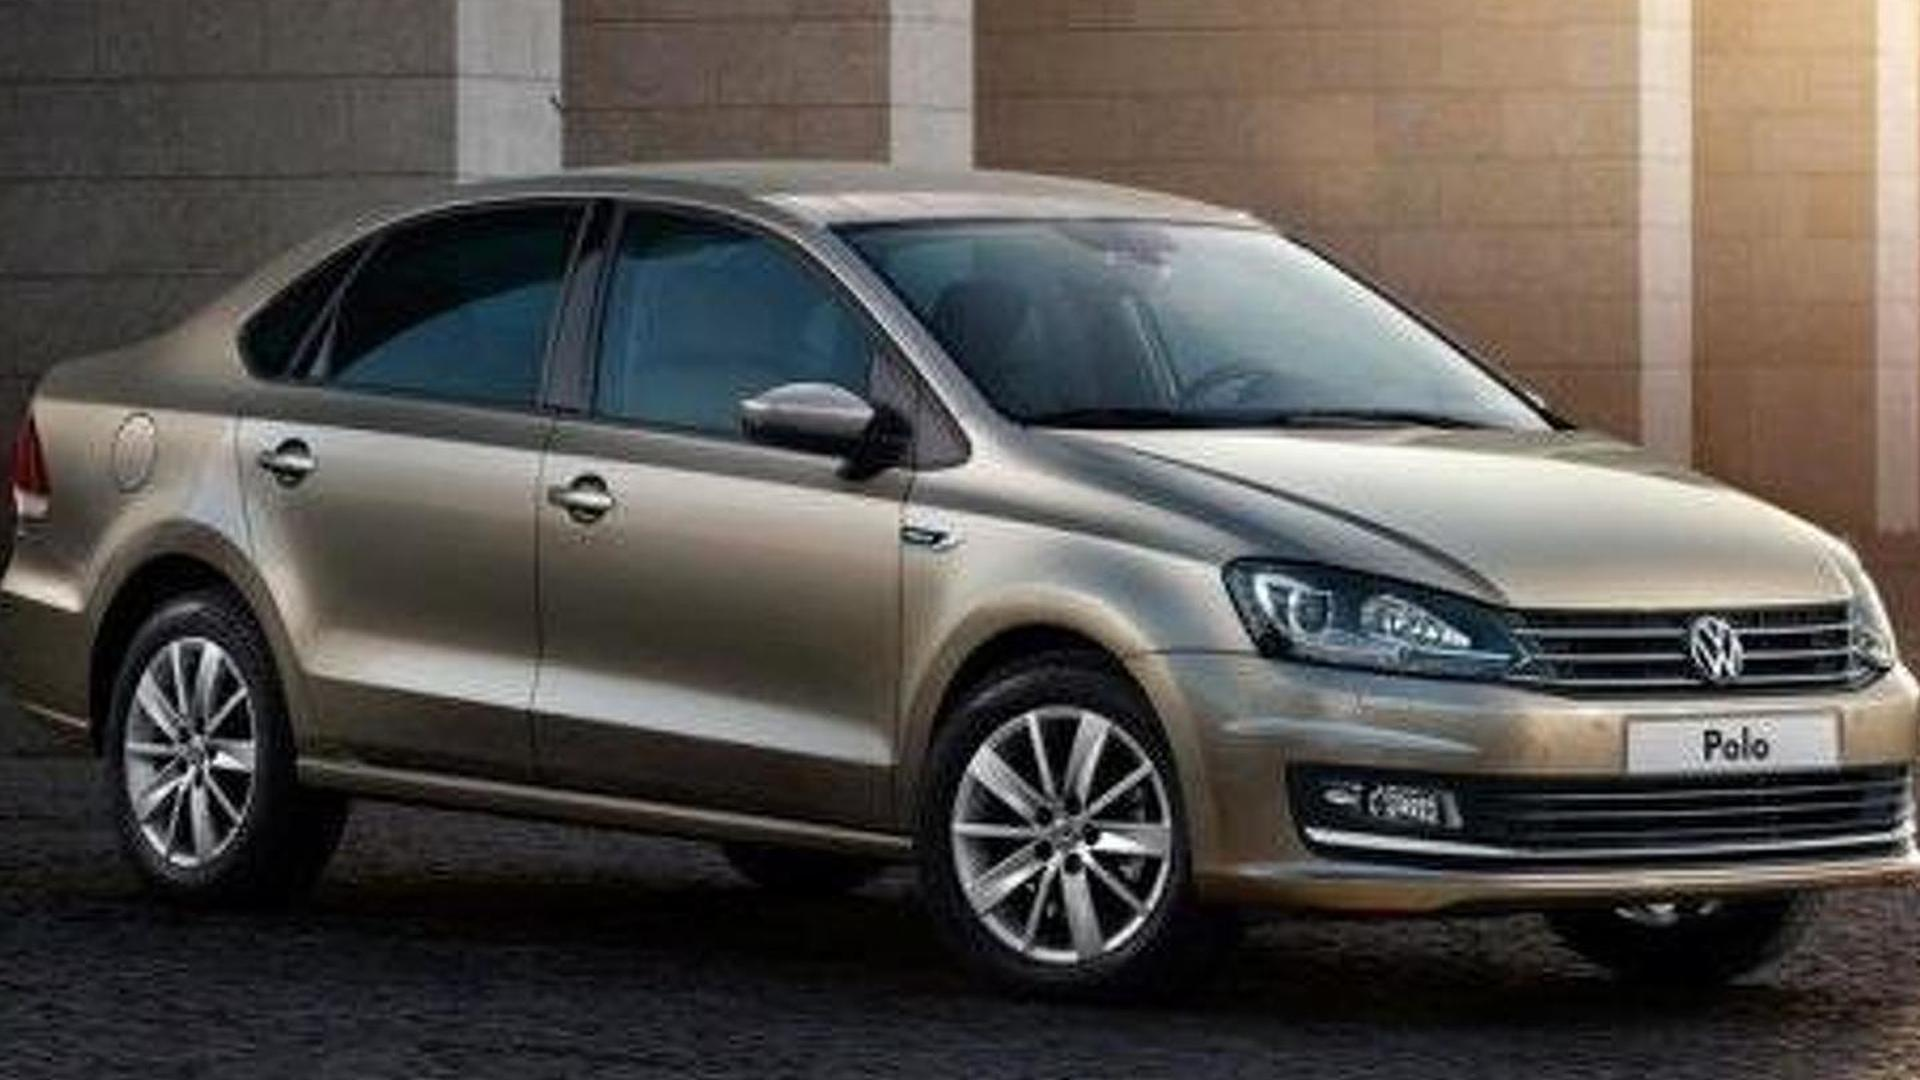 Volkswagen Polo sedan facelift revealed, goes on sale next month